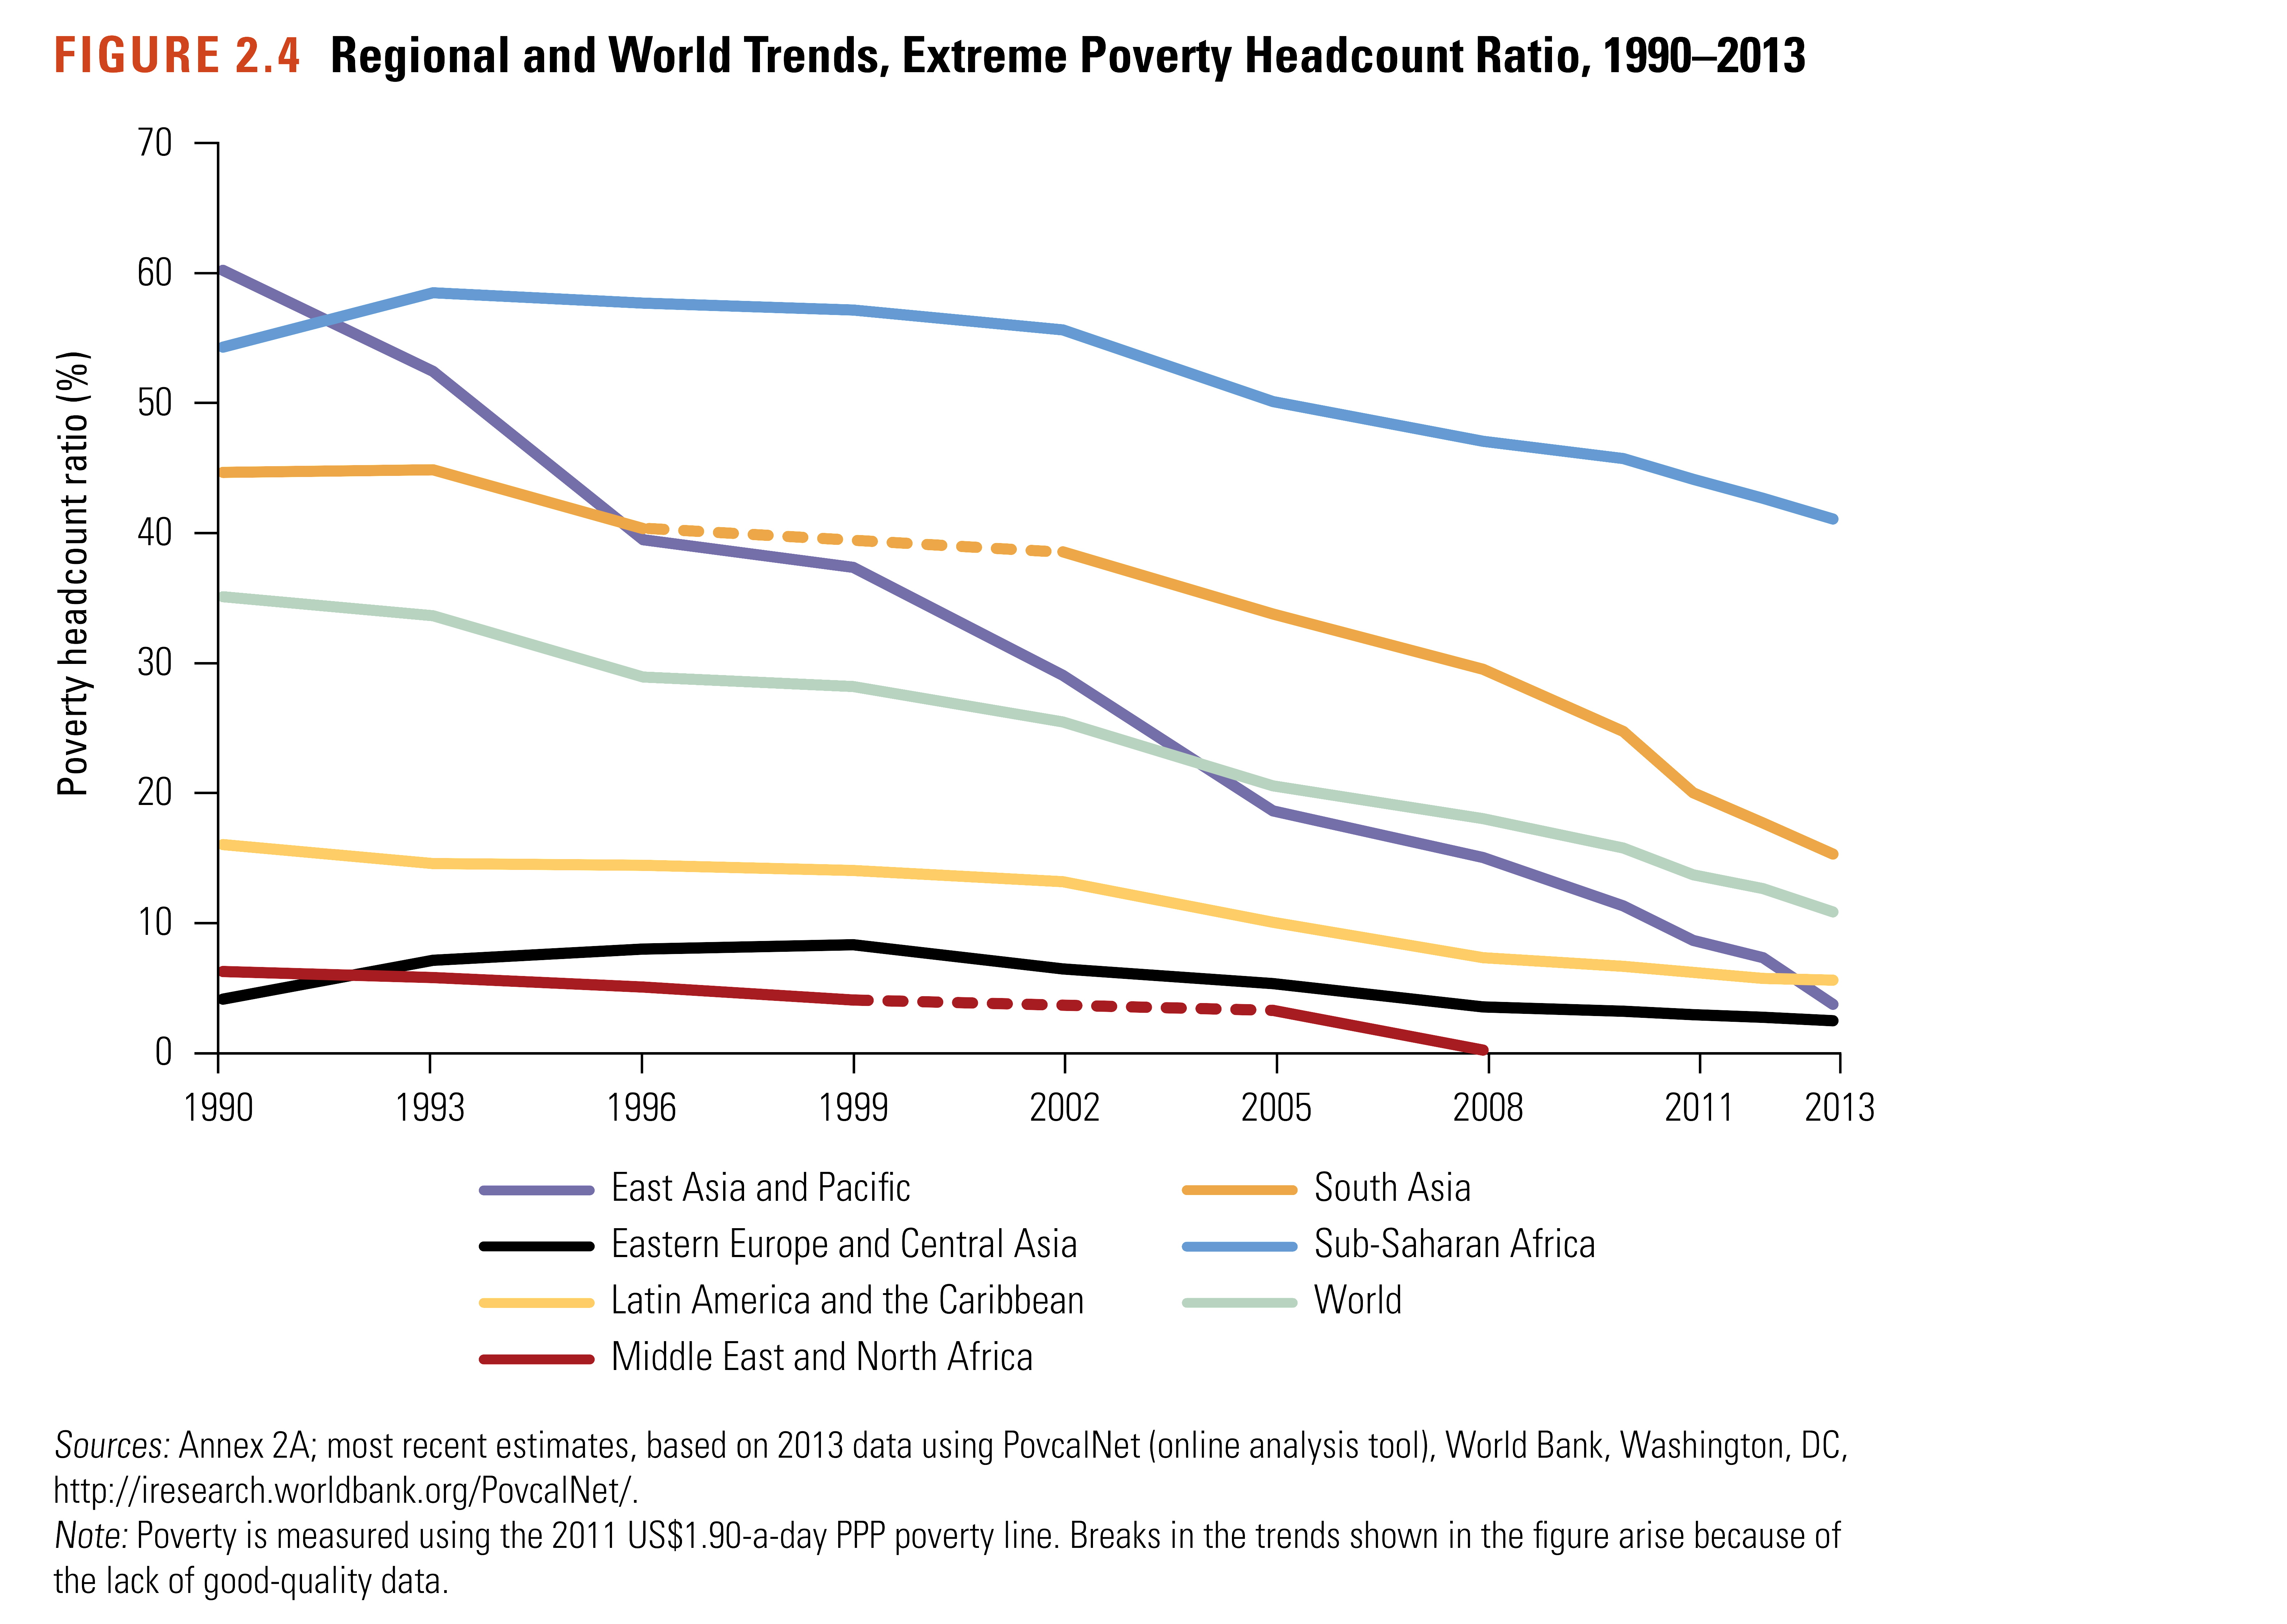 Change in extreme poverty rate by region